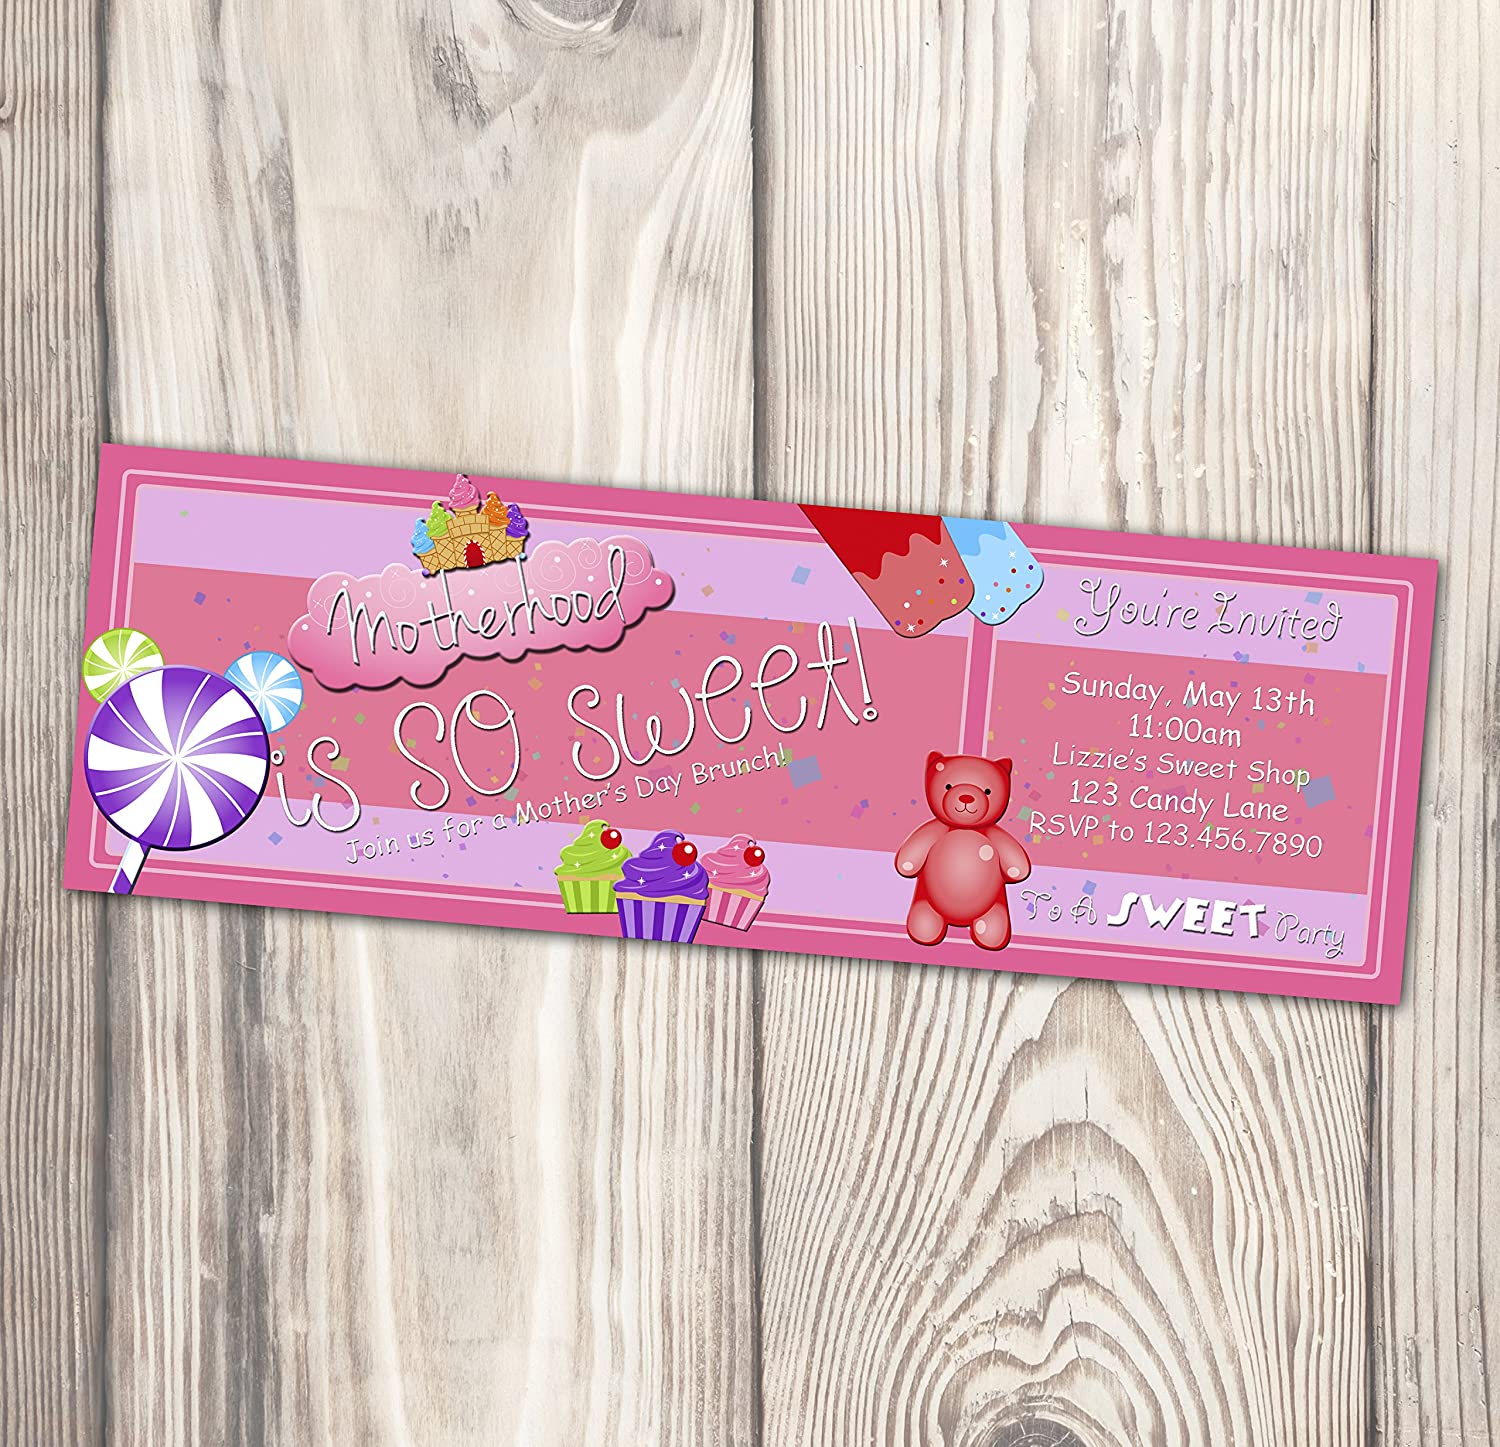 Max 82% OFF Mother's Day Ticket Invitation - Candy is Motherhood National products SO SWEET